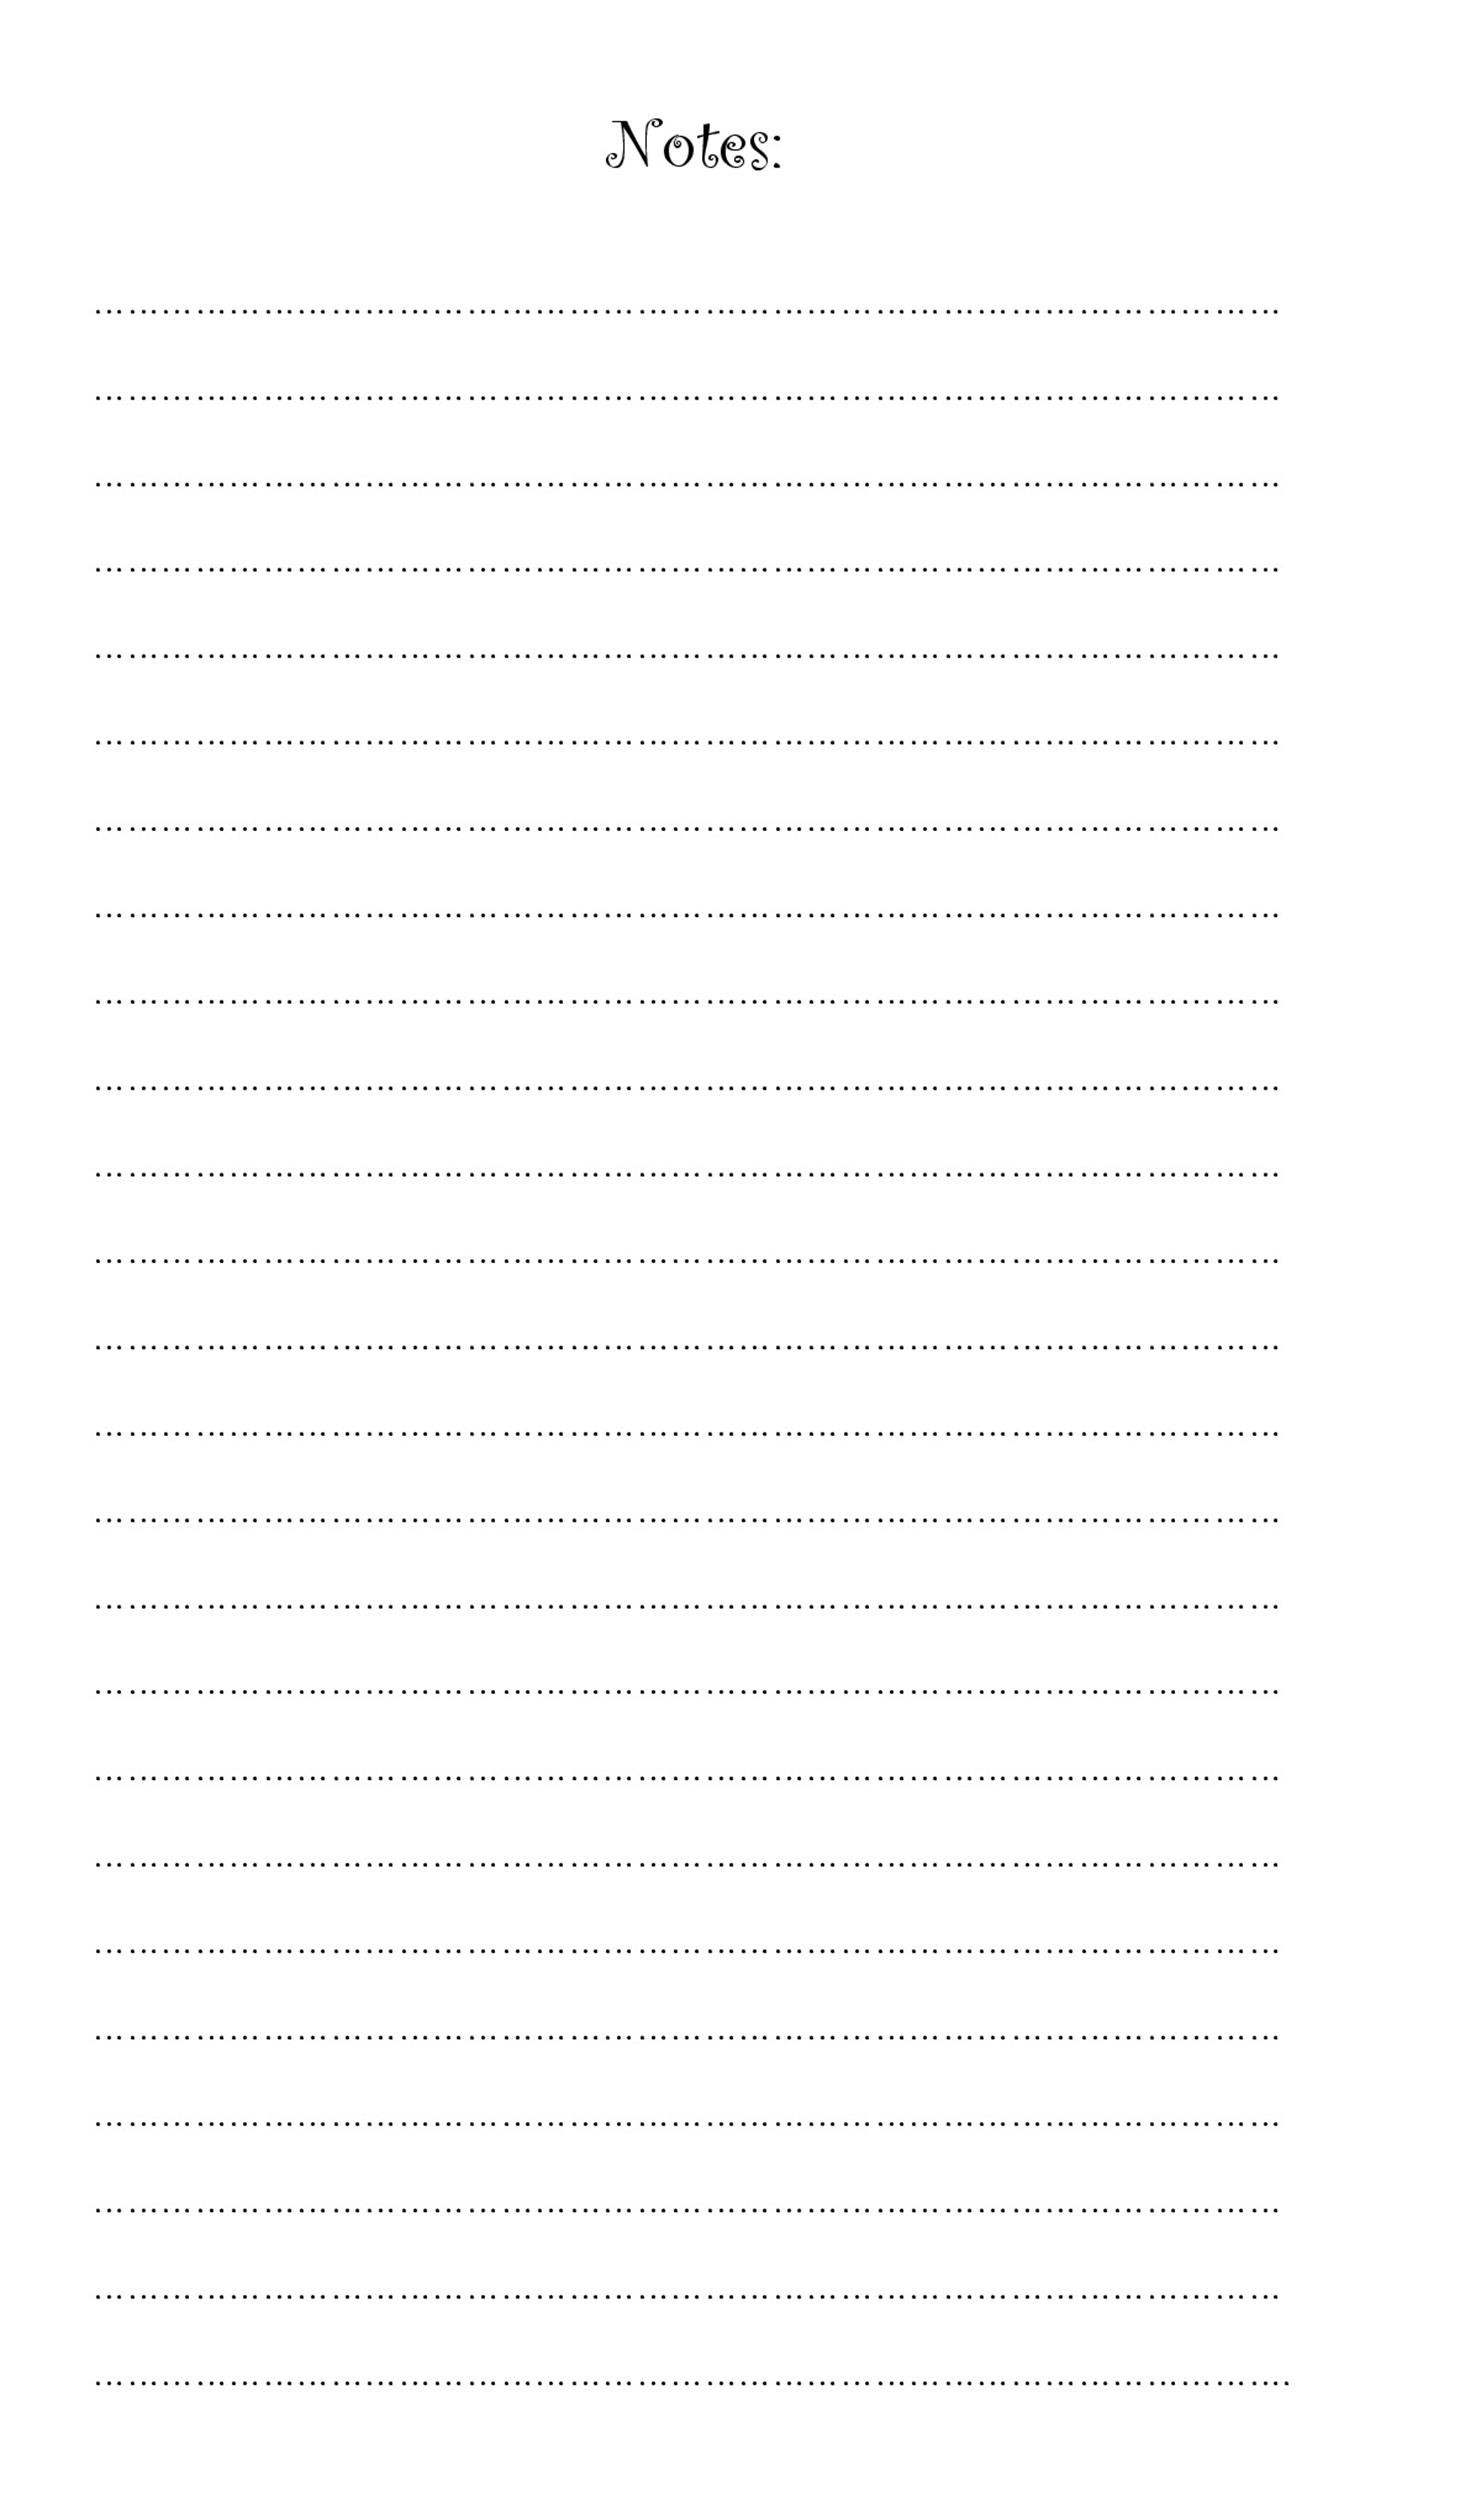 32 Printable Lined Paper Templates Template Lab